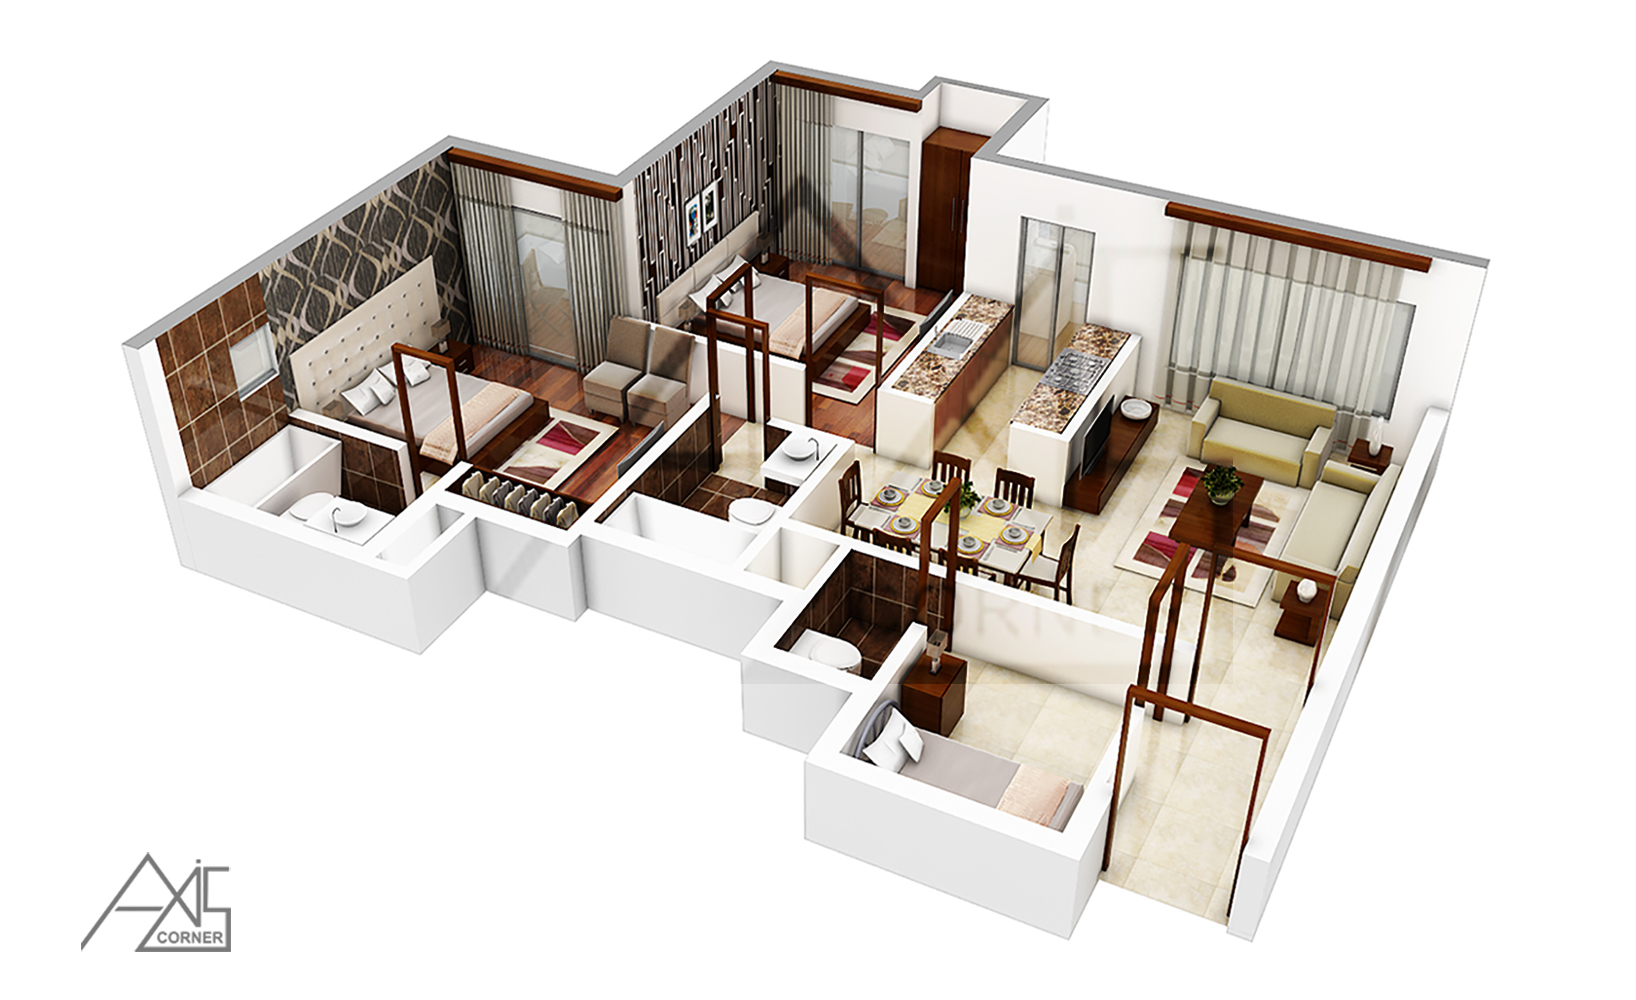 3D Architectural Floor Plans Rendering Portfolio ! 3D